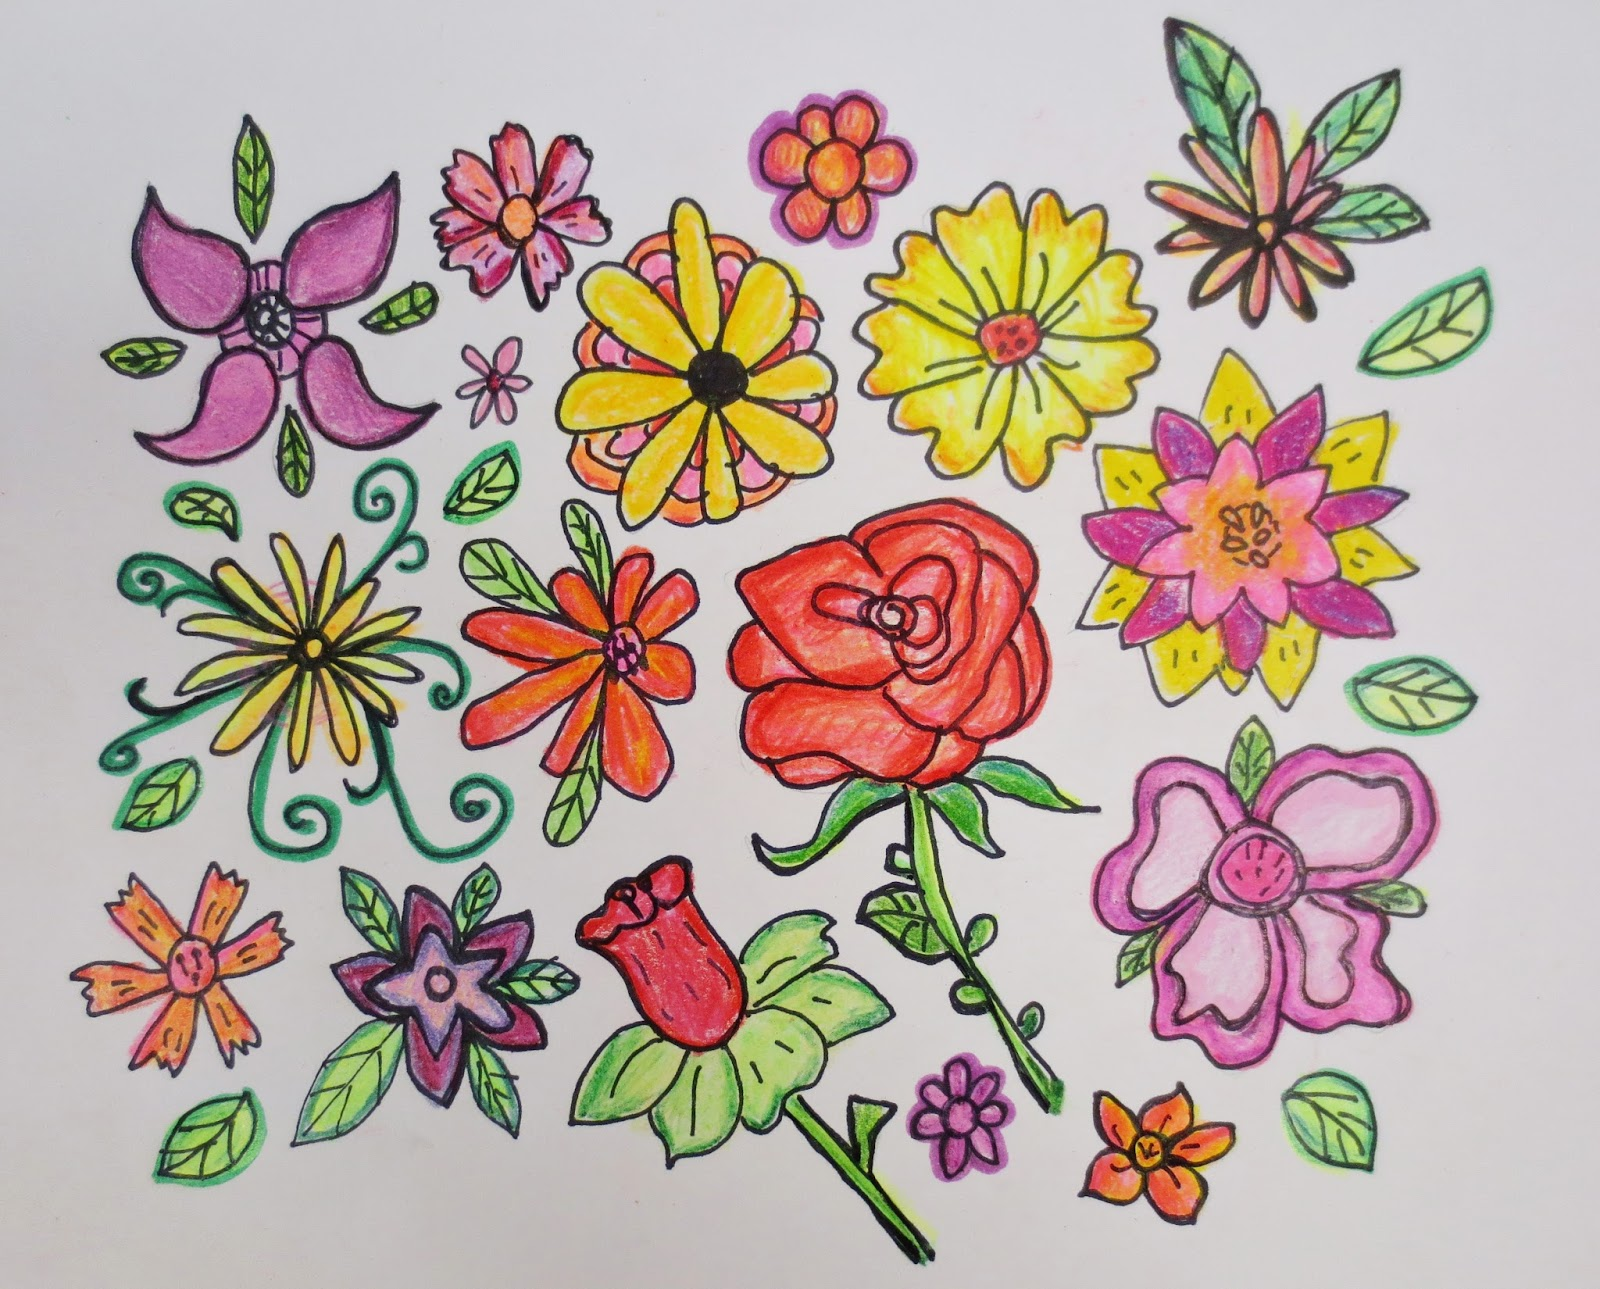 Published Article, Colored Pencil Flowers and My Latest Creative ...